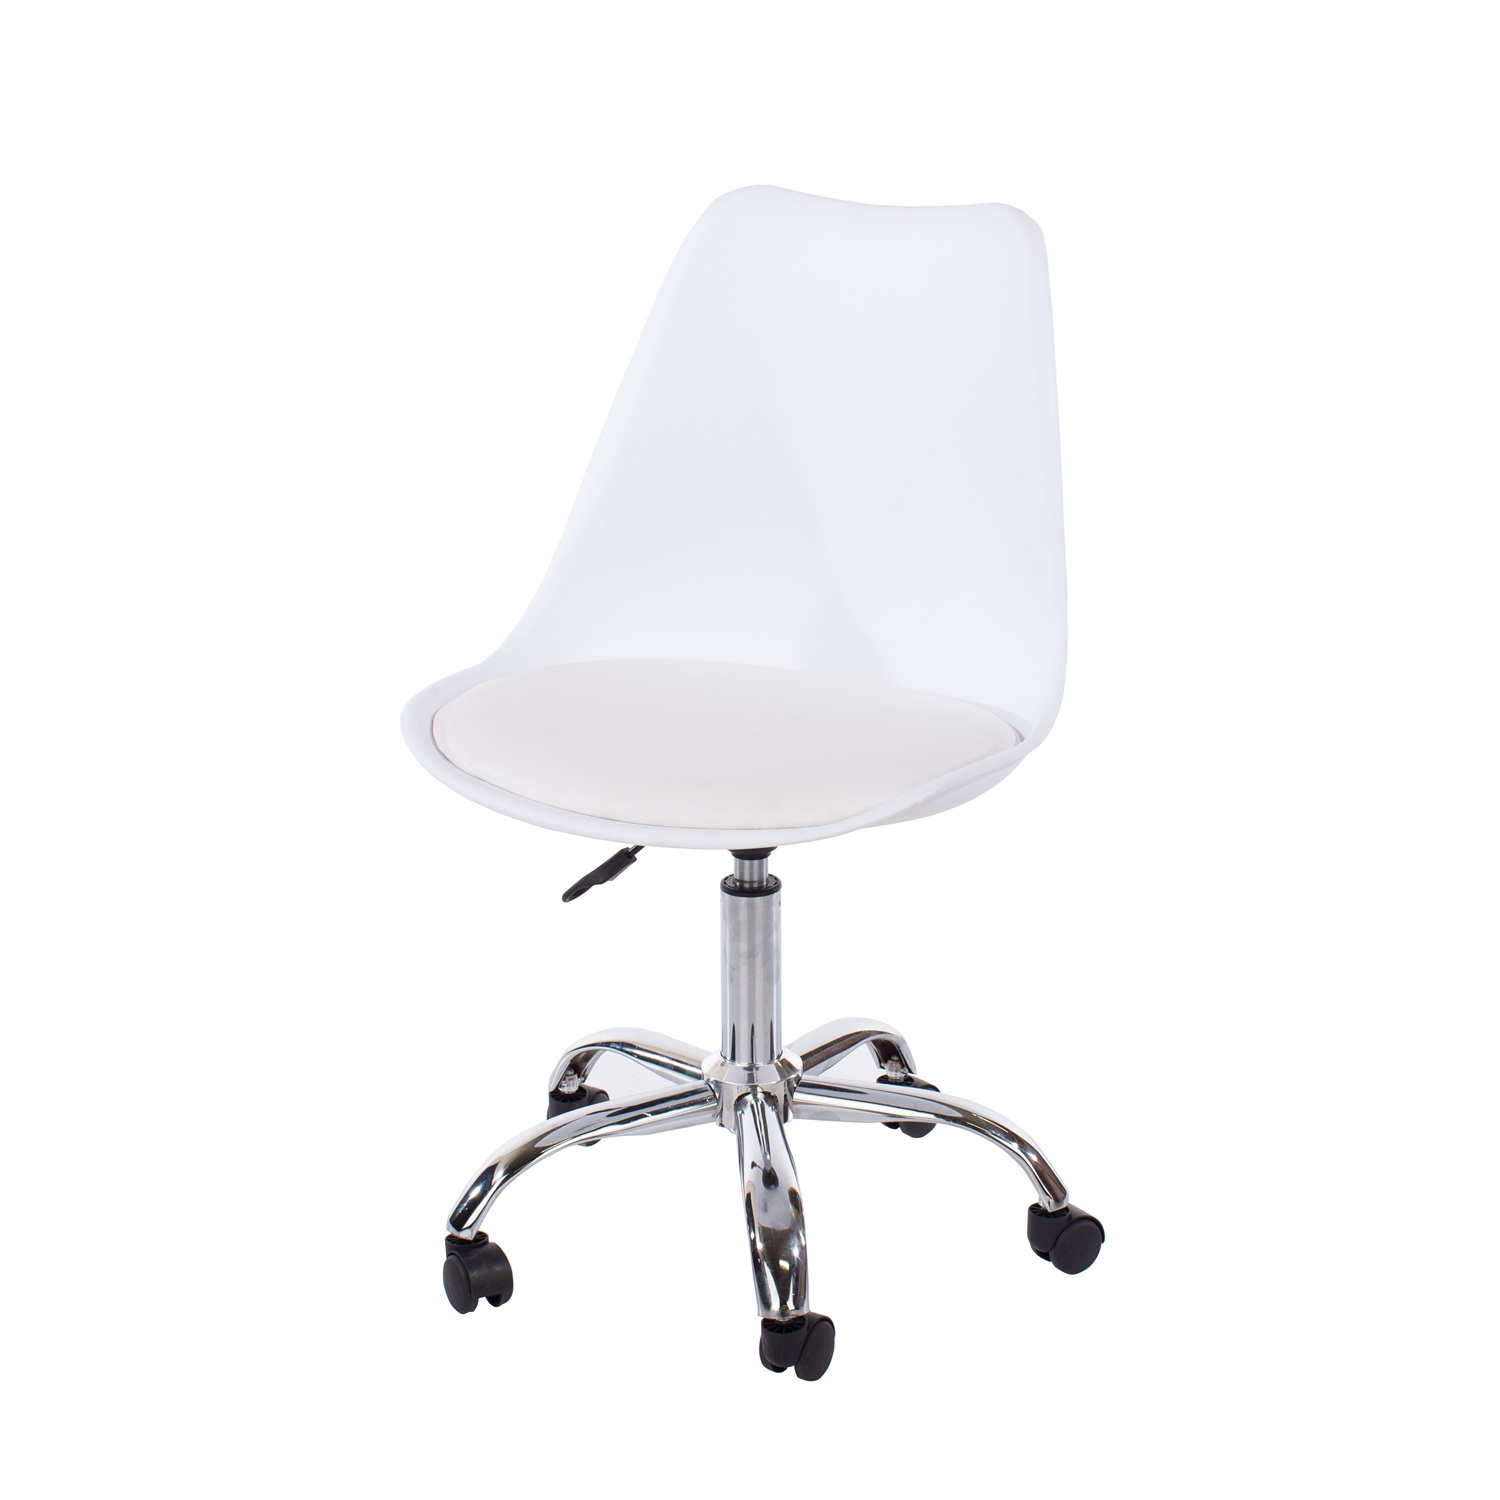 home studio chair with upholstered seat in white